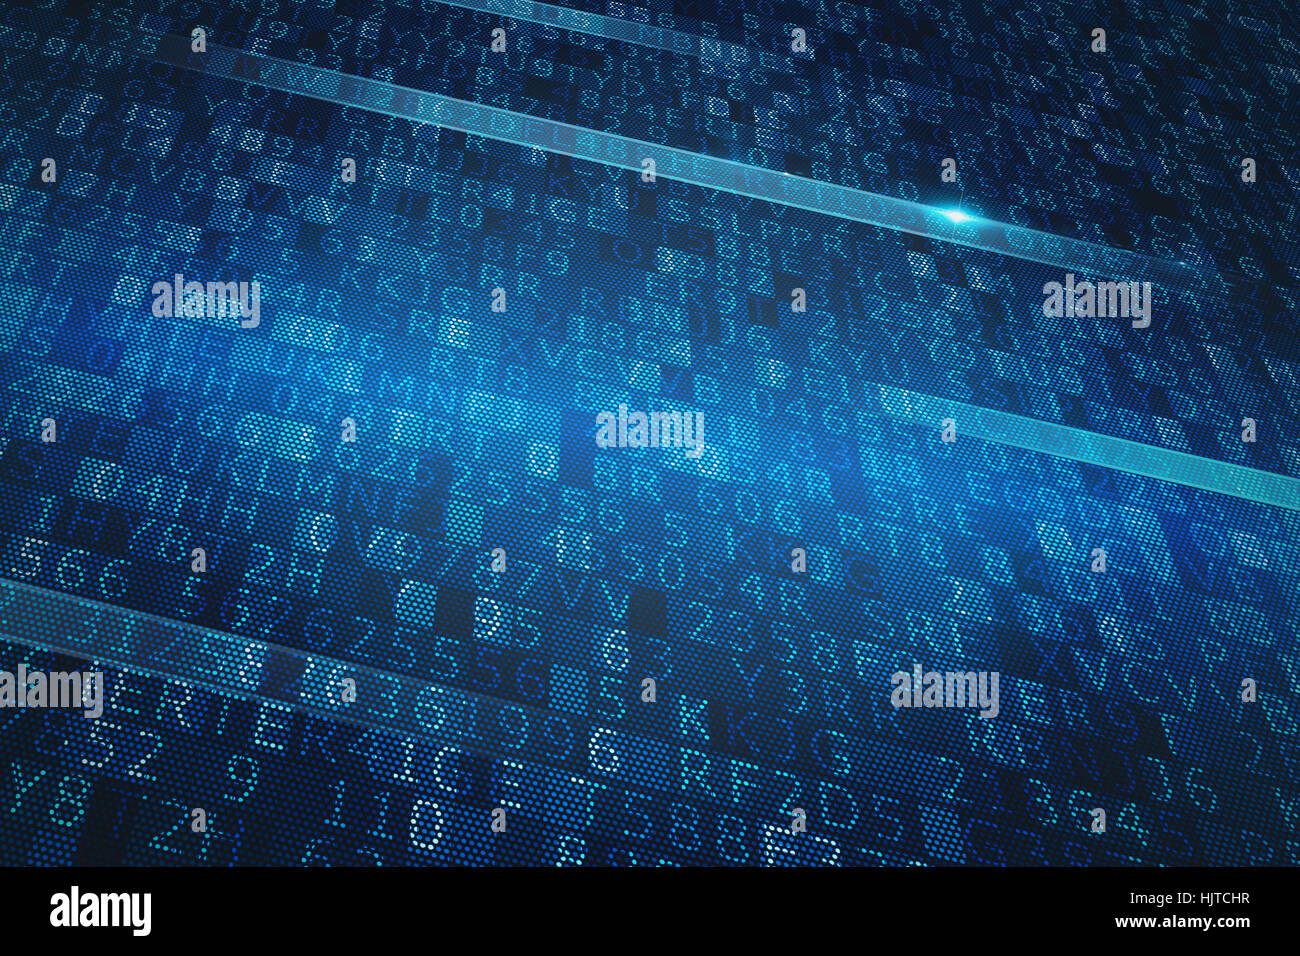 Digital binary system - Stock Image